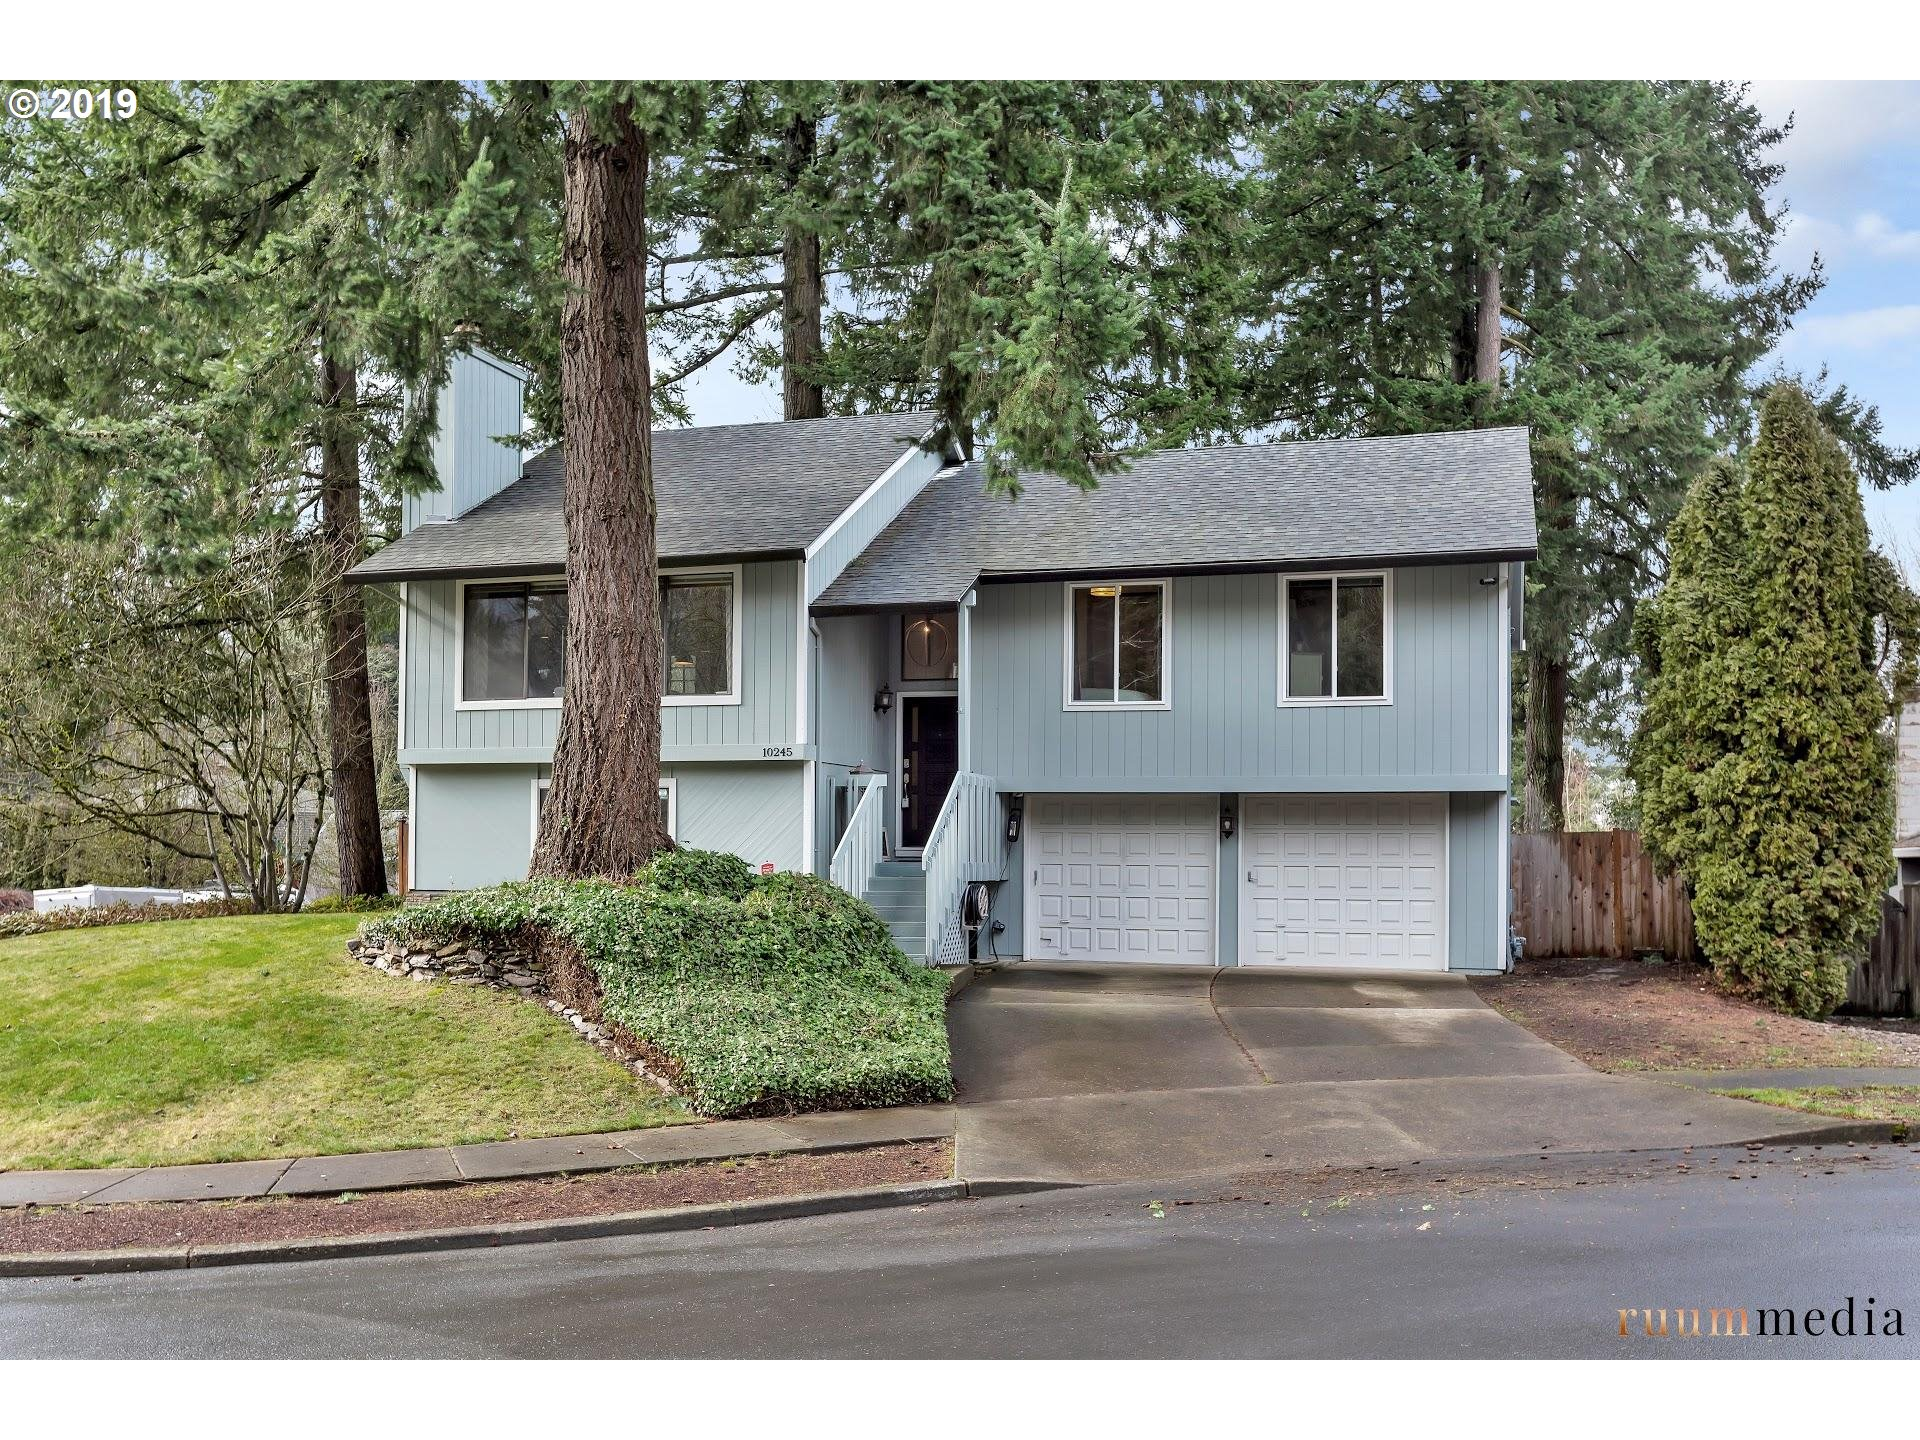 10245 SW 102ND CT Portland Home Listings - Keller Williams Sunset Corridor Portland Real Estate